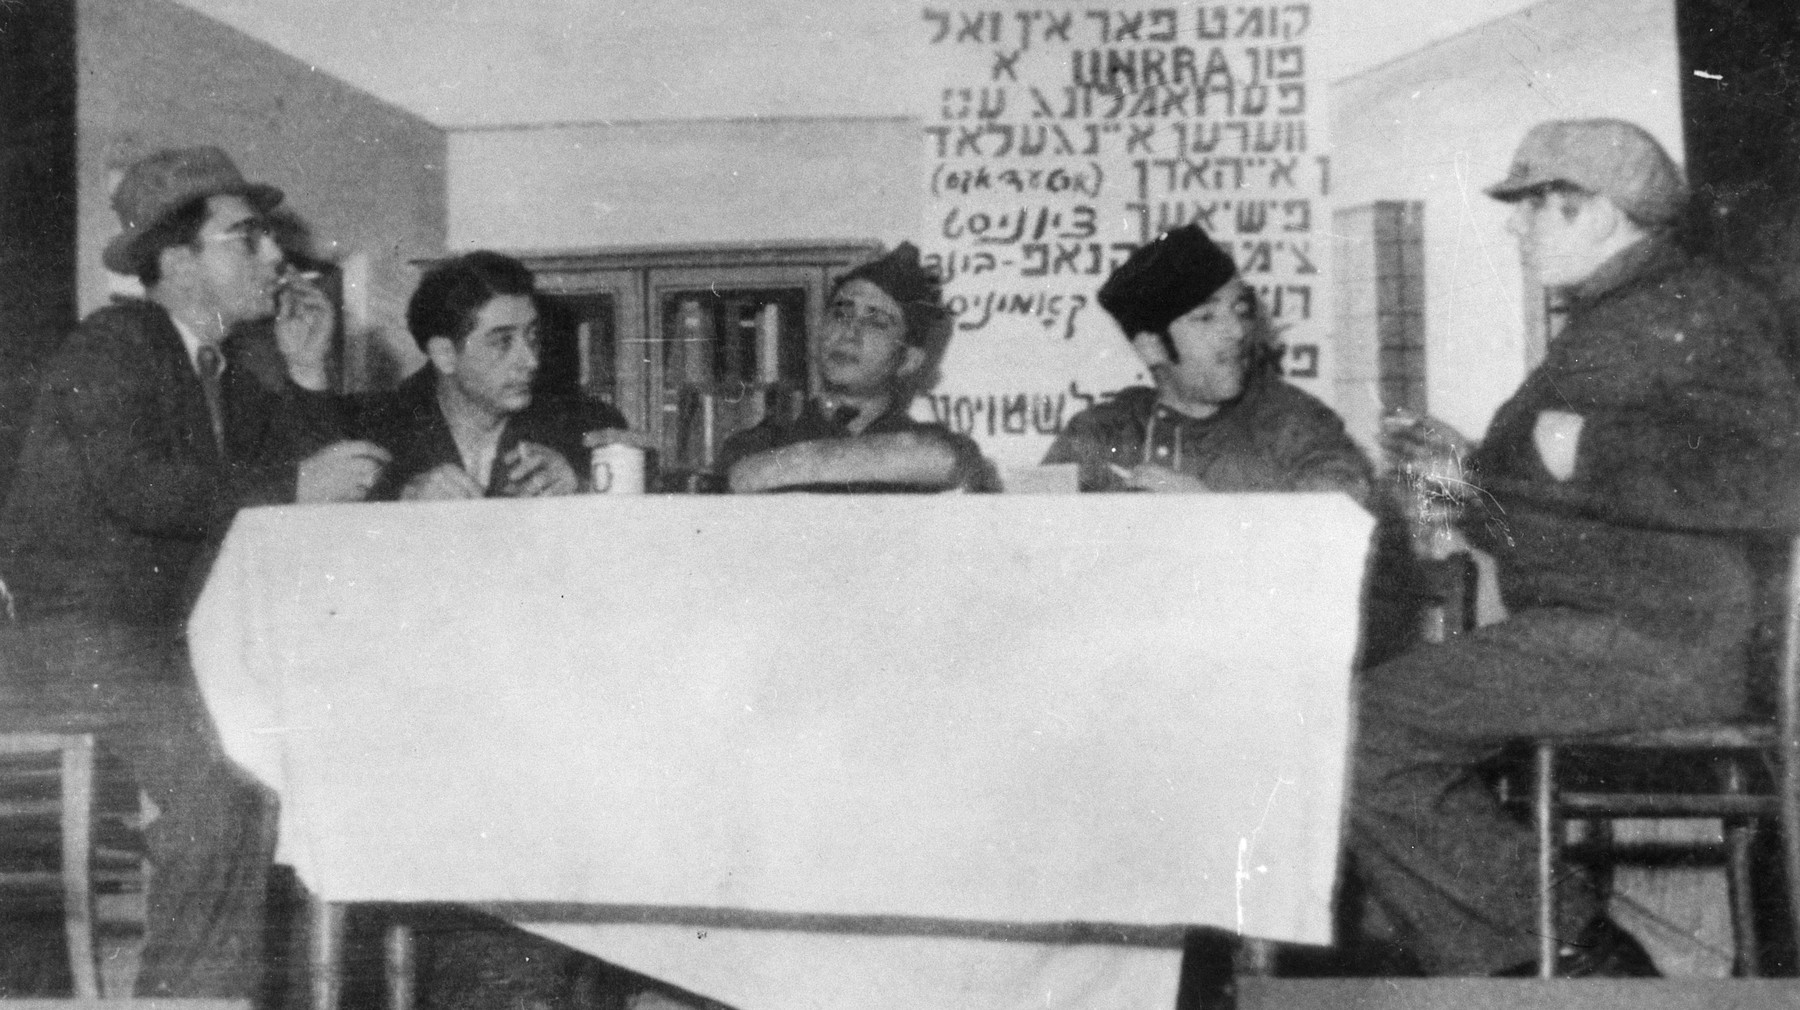 A drama group performs a play in the Zeilsheim displaced persons' camp.